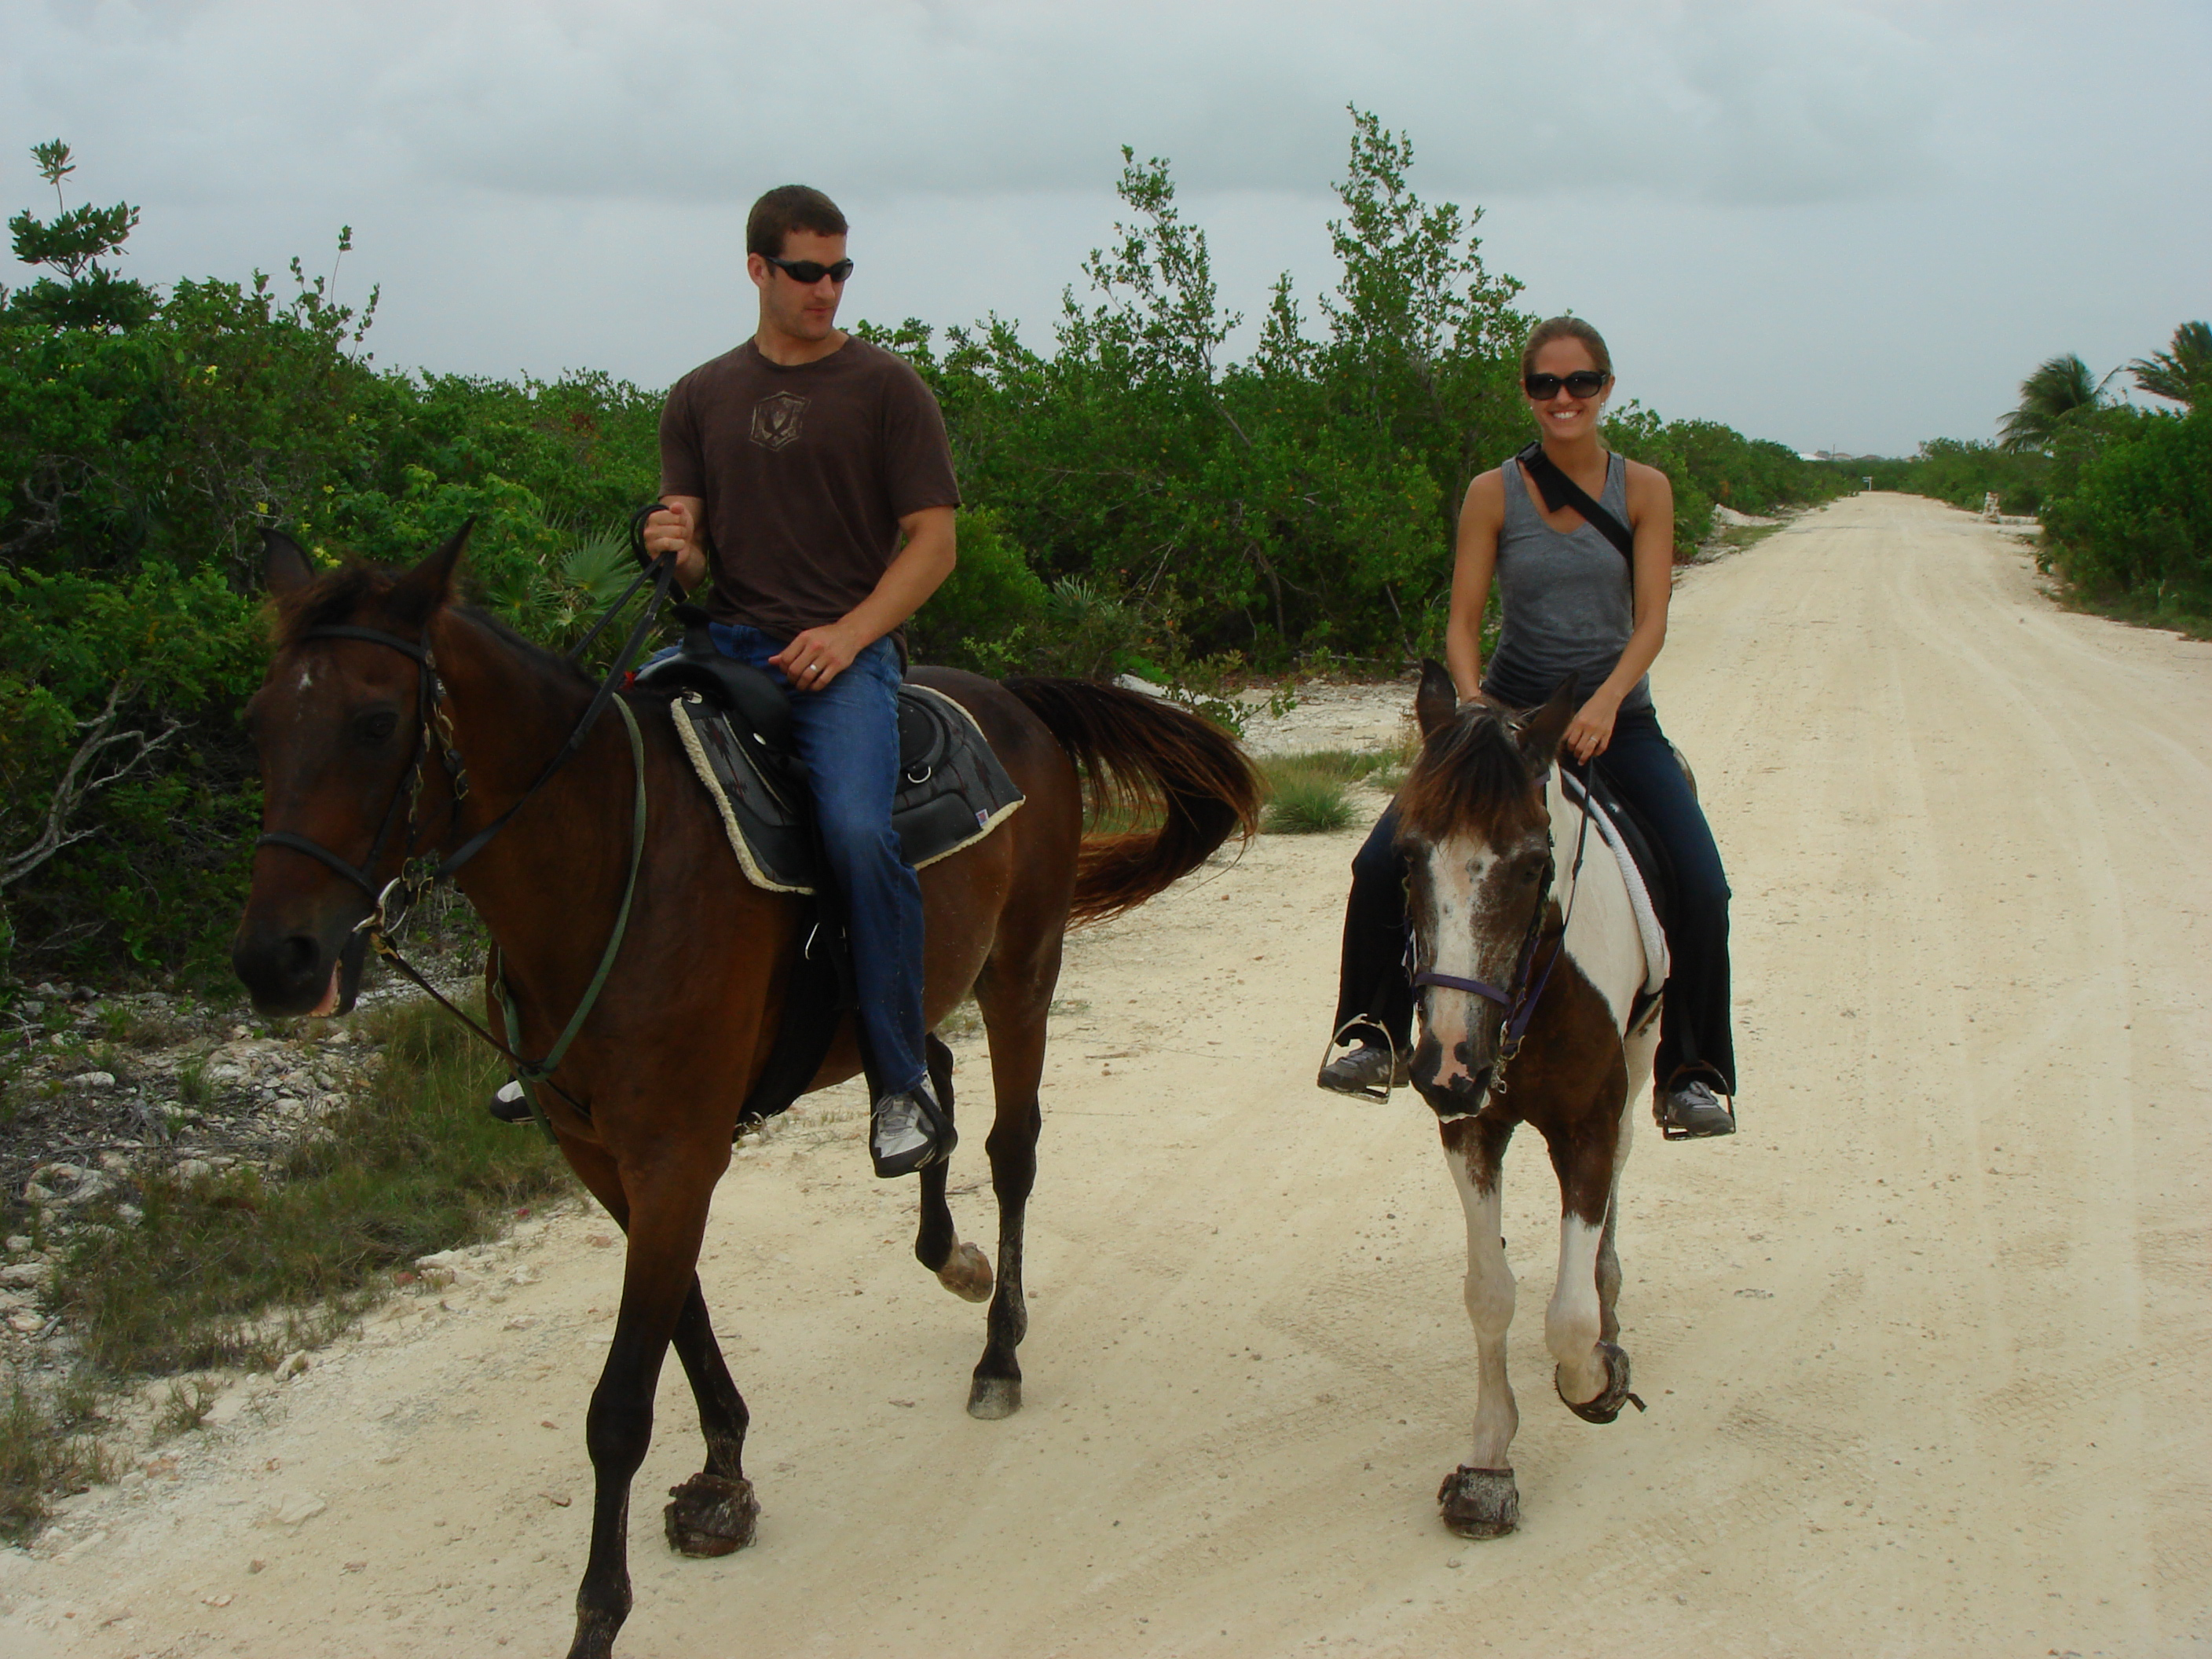 How Relationships are like Riding a Horse: They Both take Work